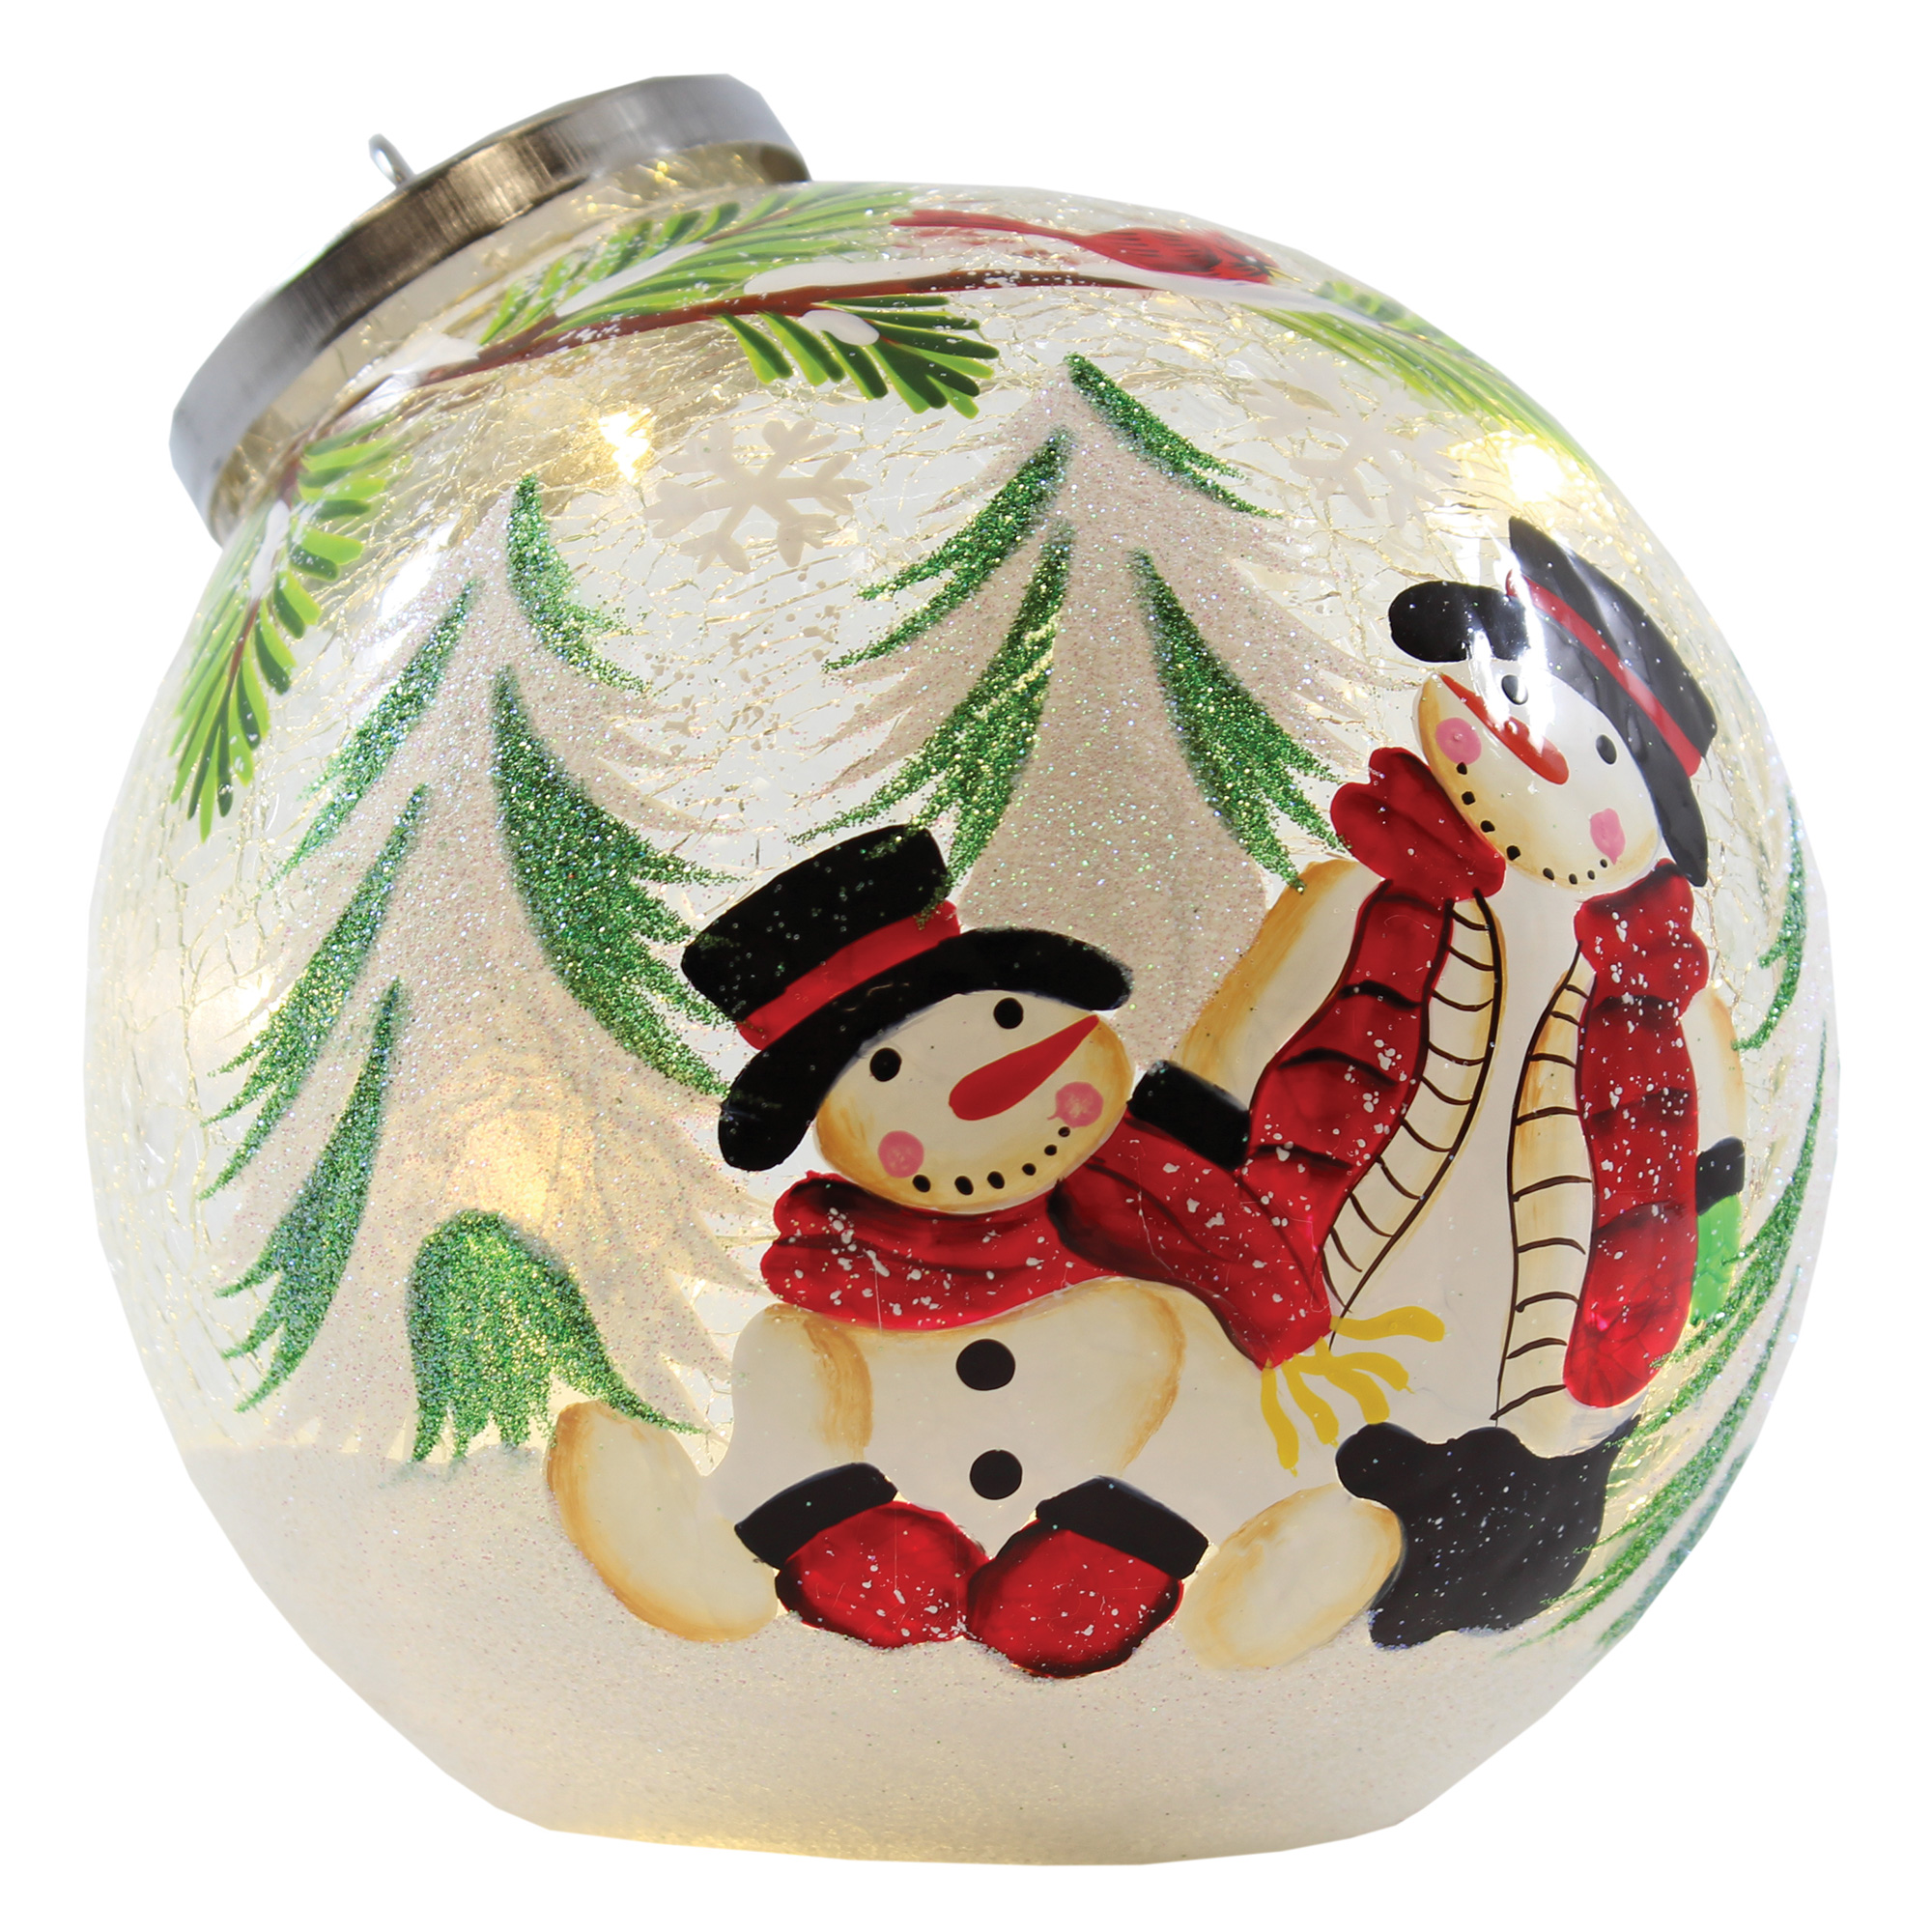 """5.5"""" x 6"""" x 5.5"""" TWO WILLIES ORNAMENT"""